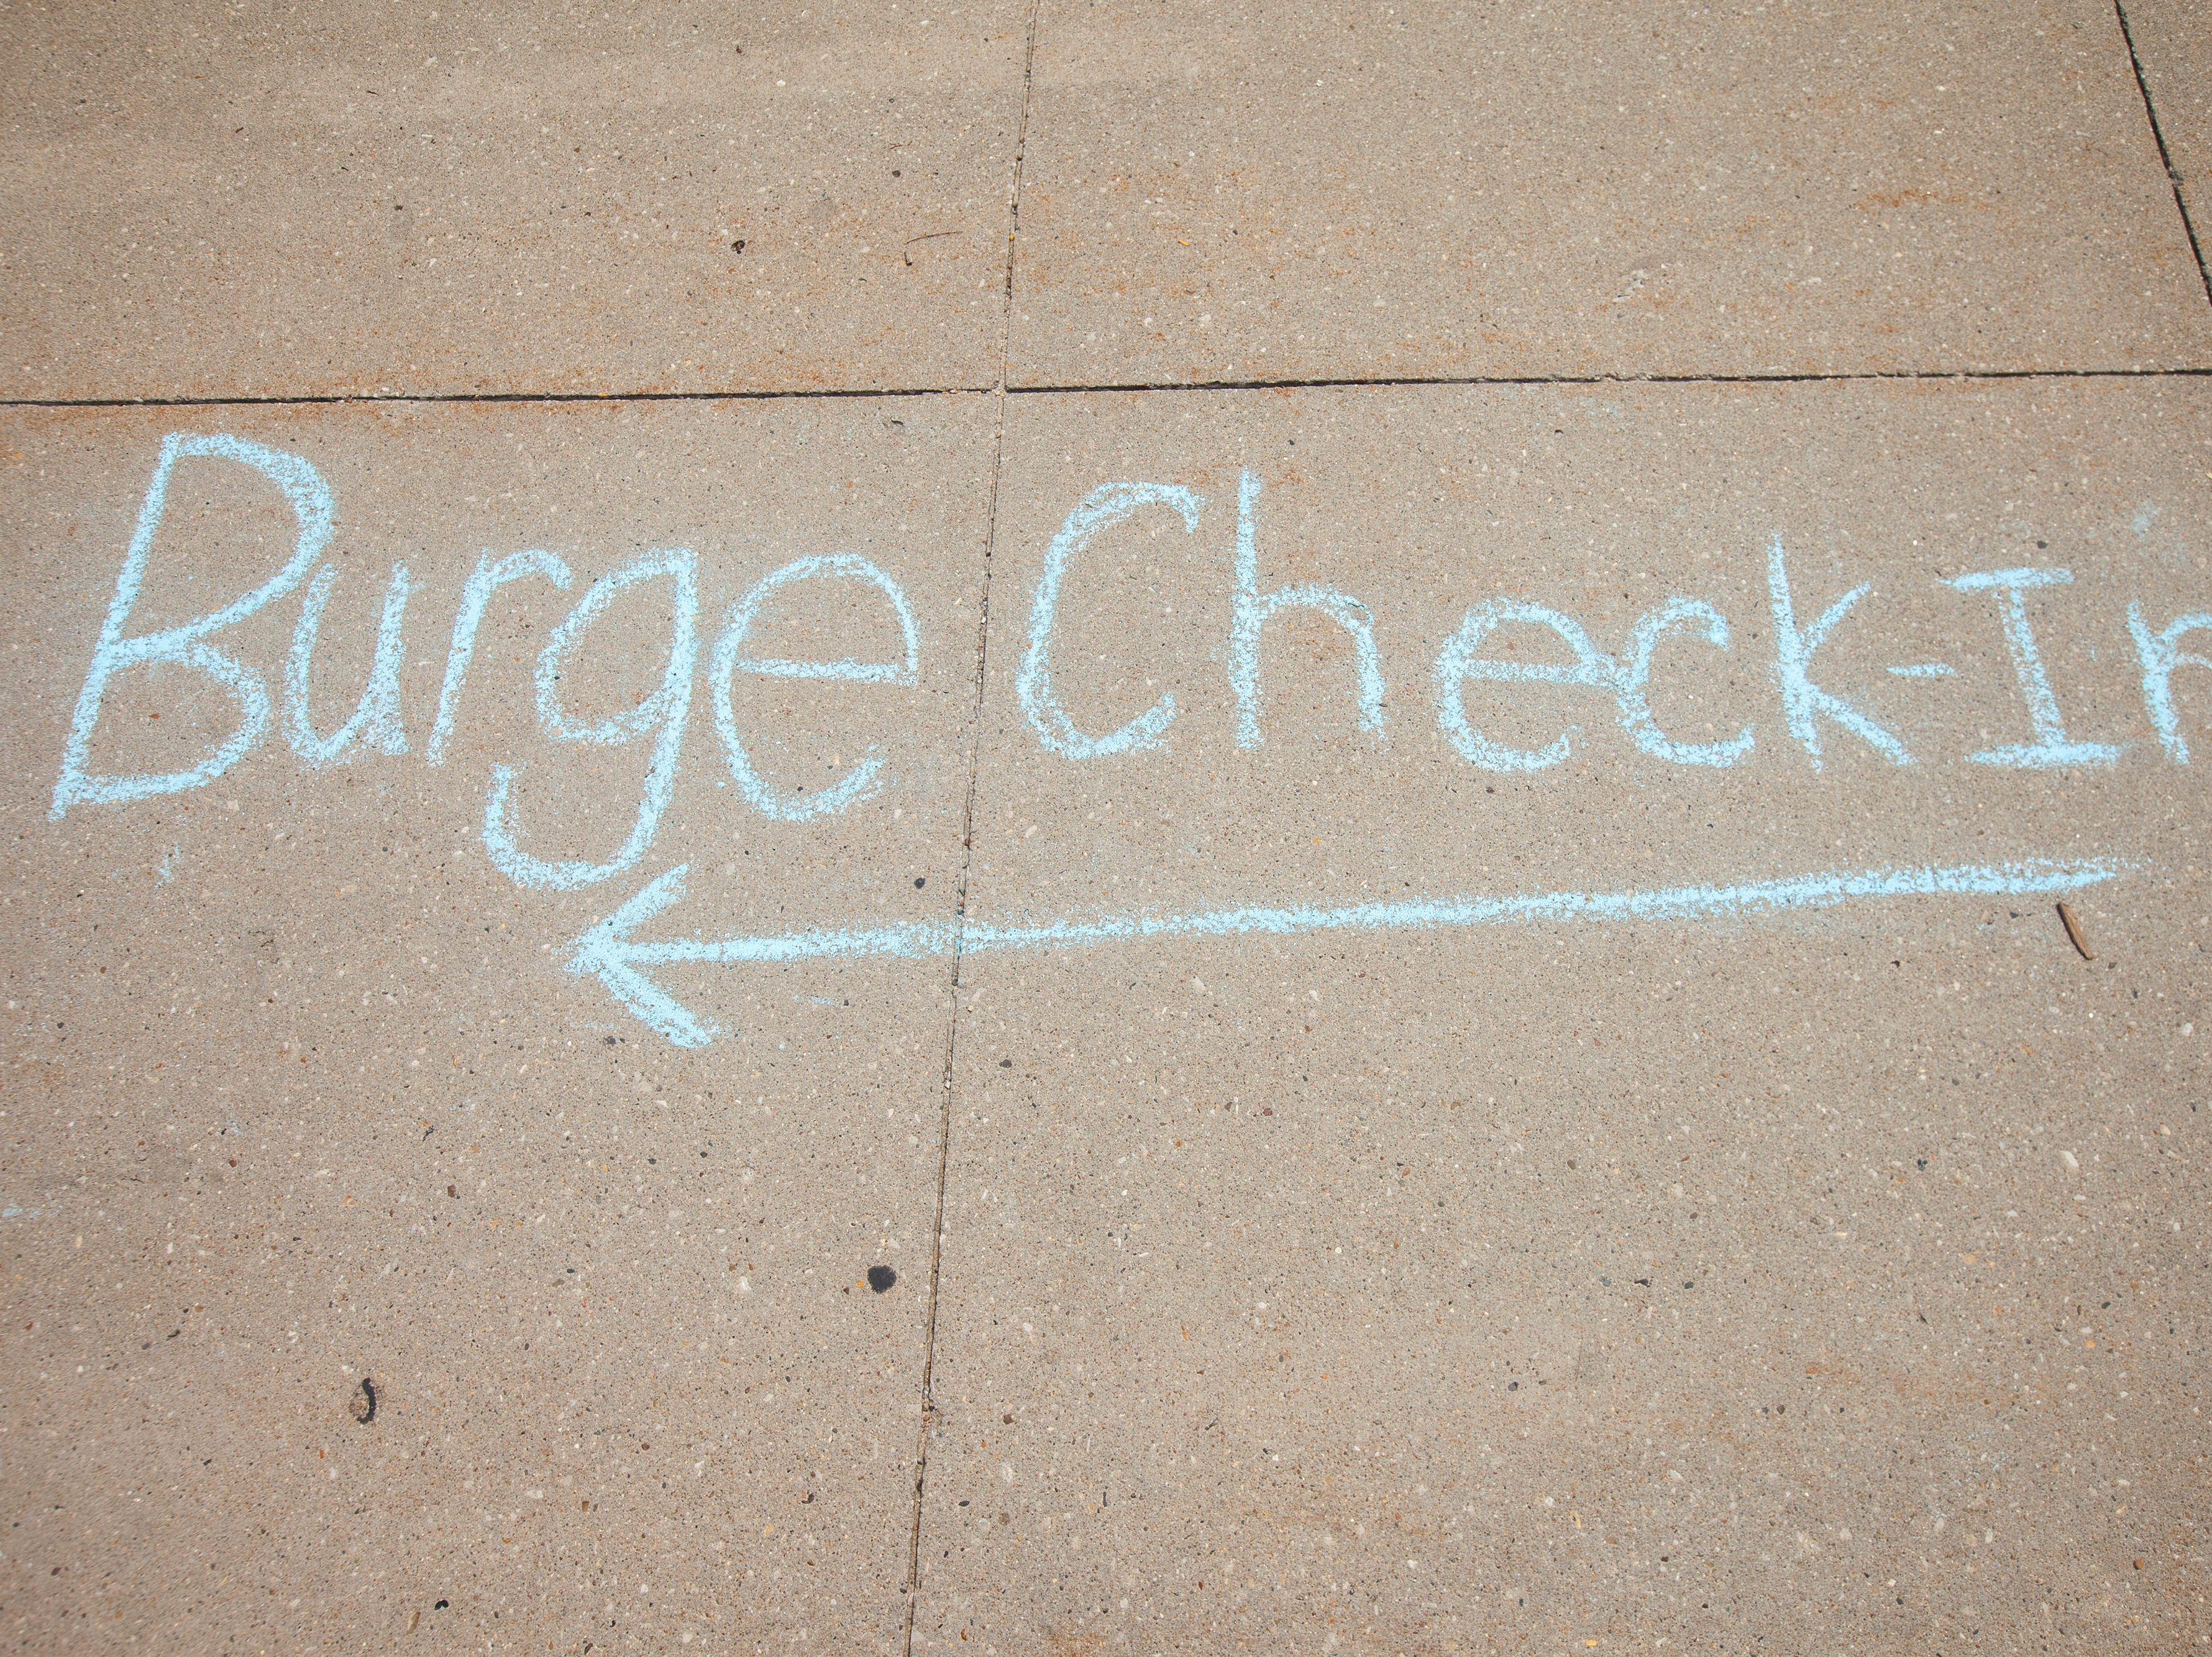 A sidewalk outside of Burge Residence Hall directs towards check-in during new student move-in on Tuesday, Aug. 14, 2018, on the University of Iowa campus in Iowa City. Tuesday was the first day for new students on campus to move into their residence halls.